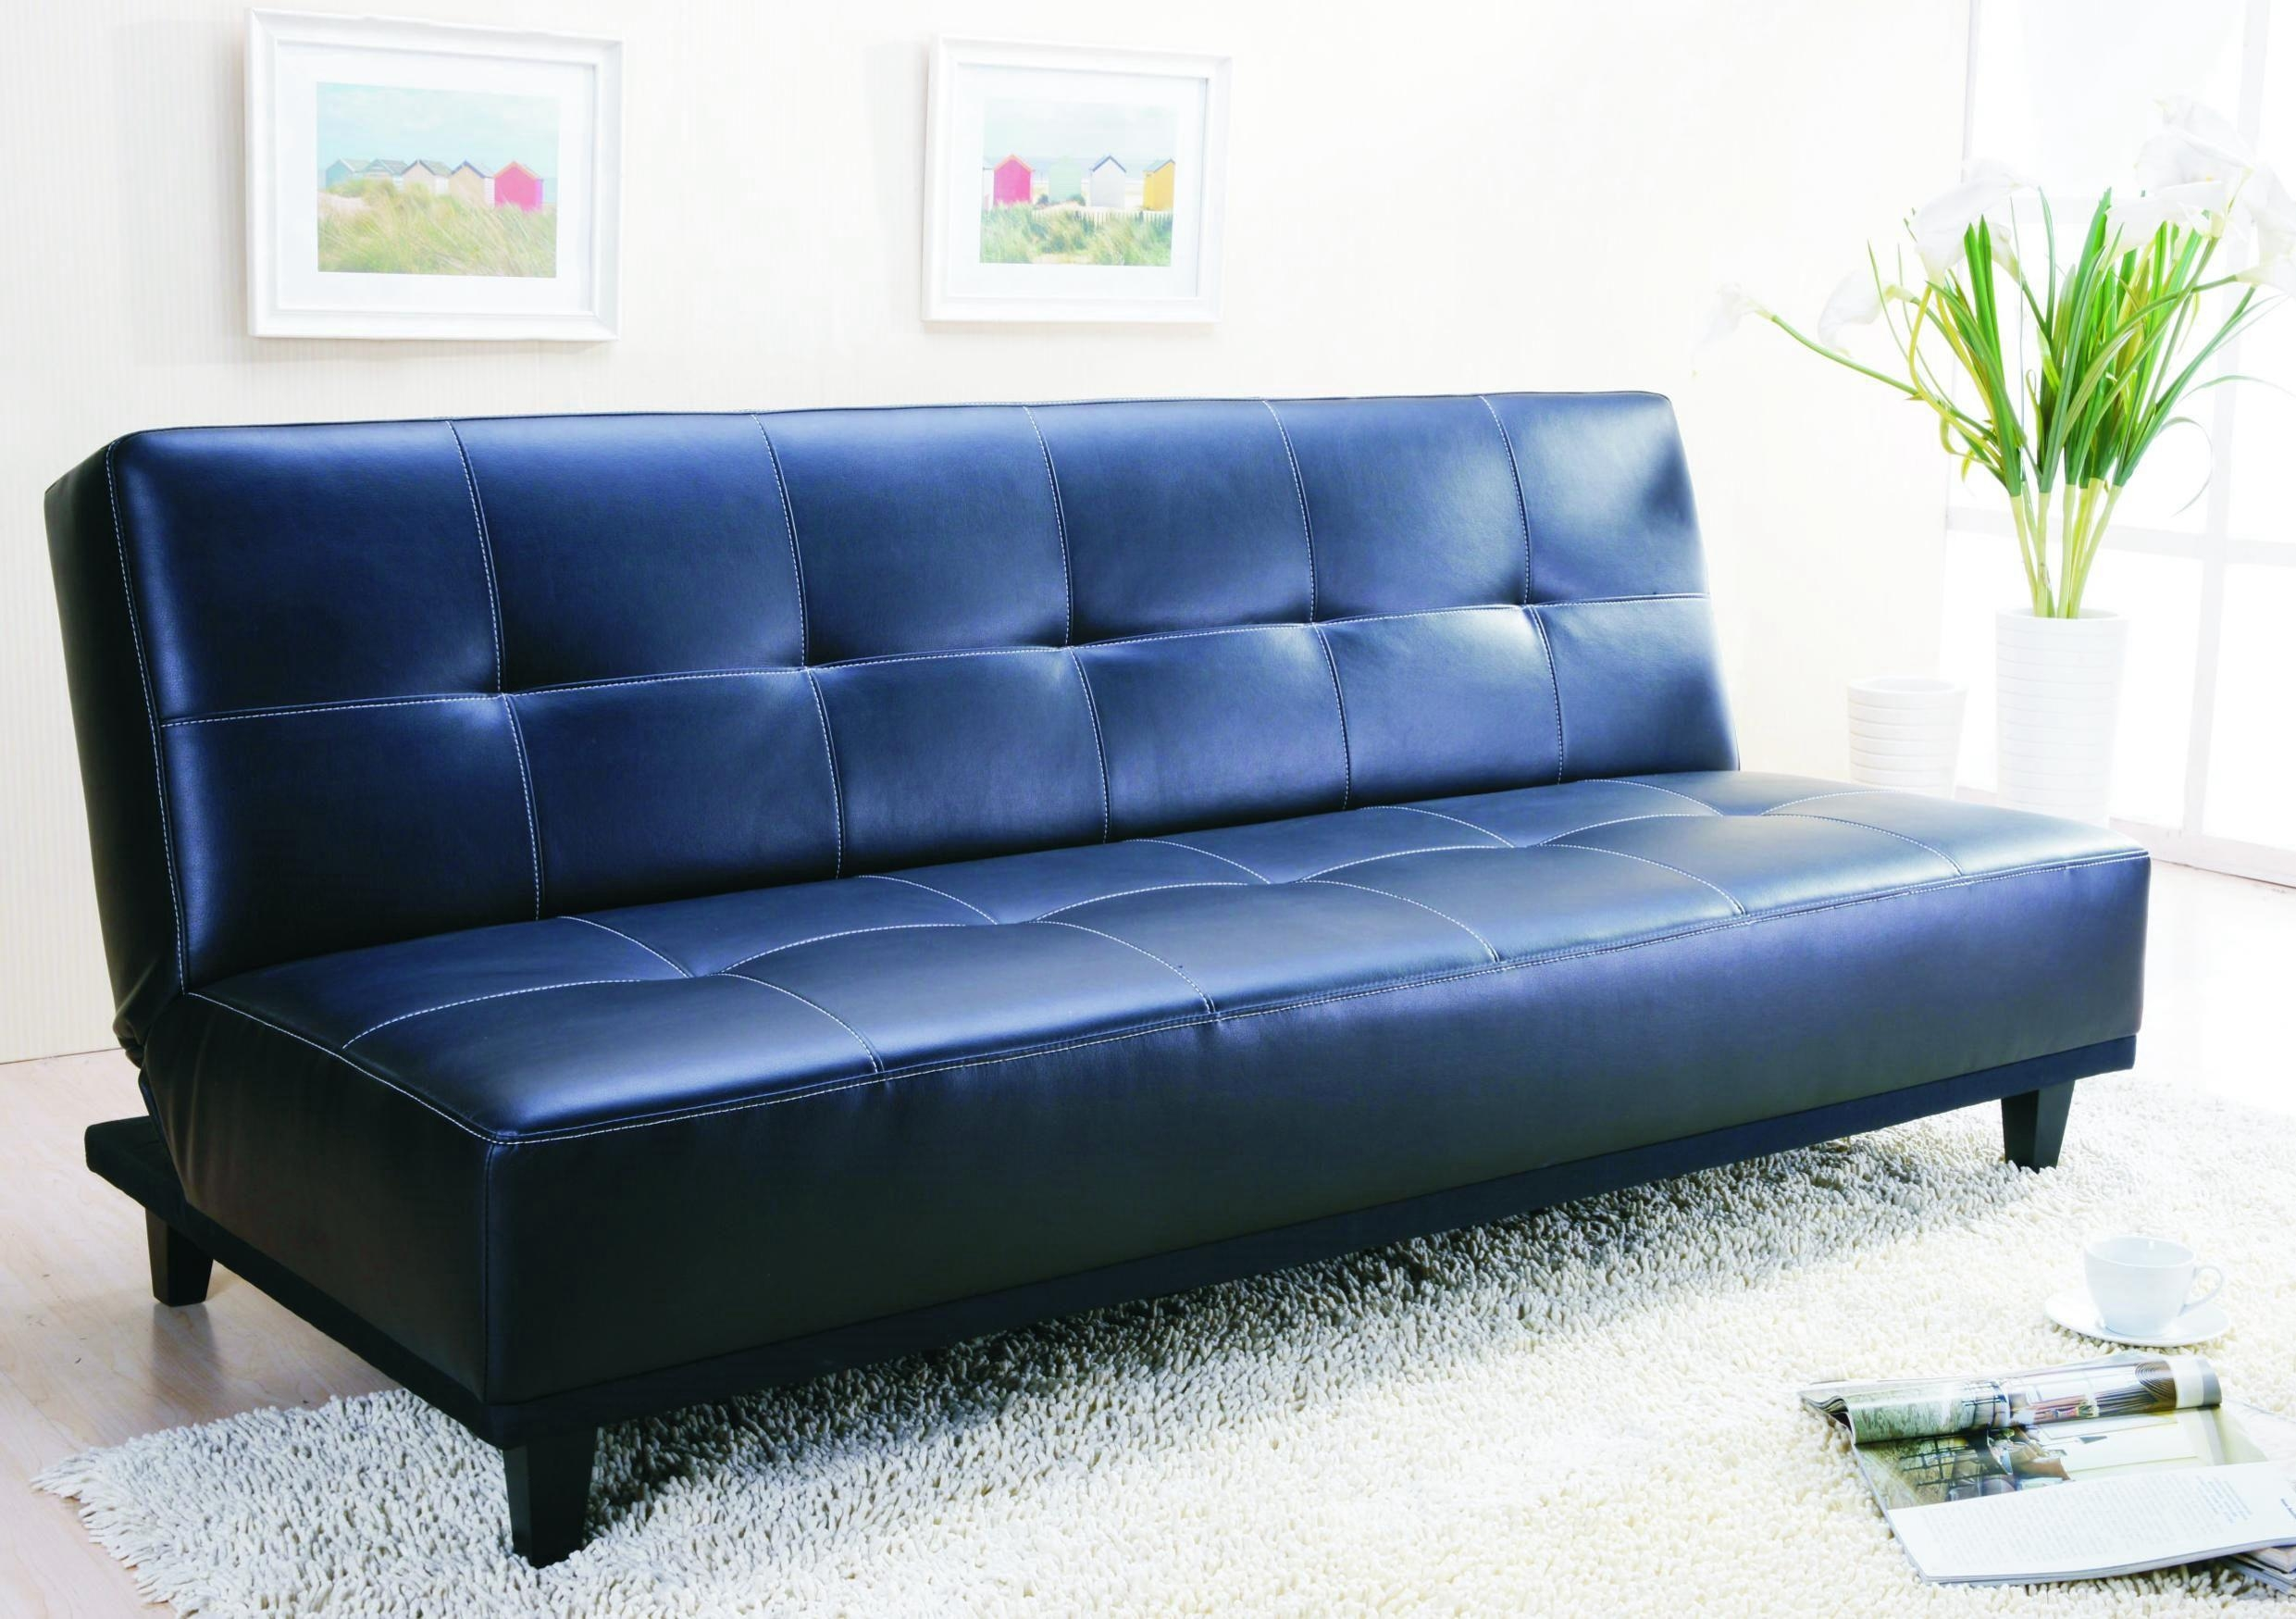 Decorating A Room With Blue Leather Sofa – Traba Homes Regarding Blue Sofa Chairs (Image 11 of 20)